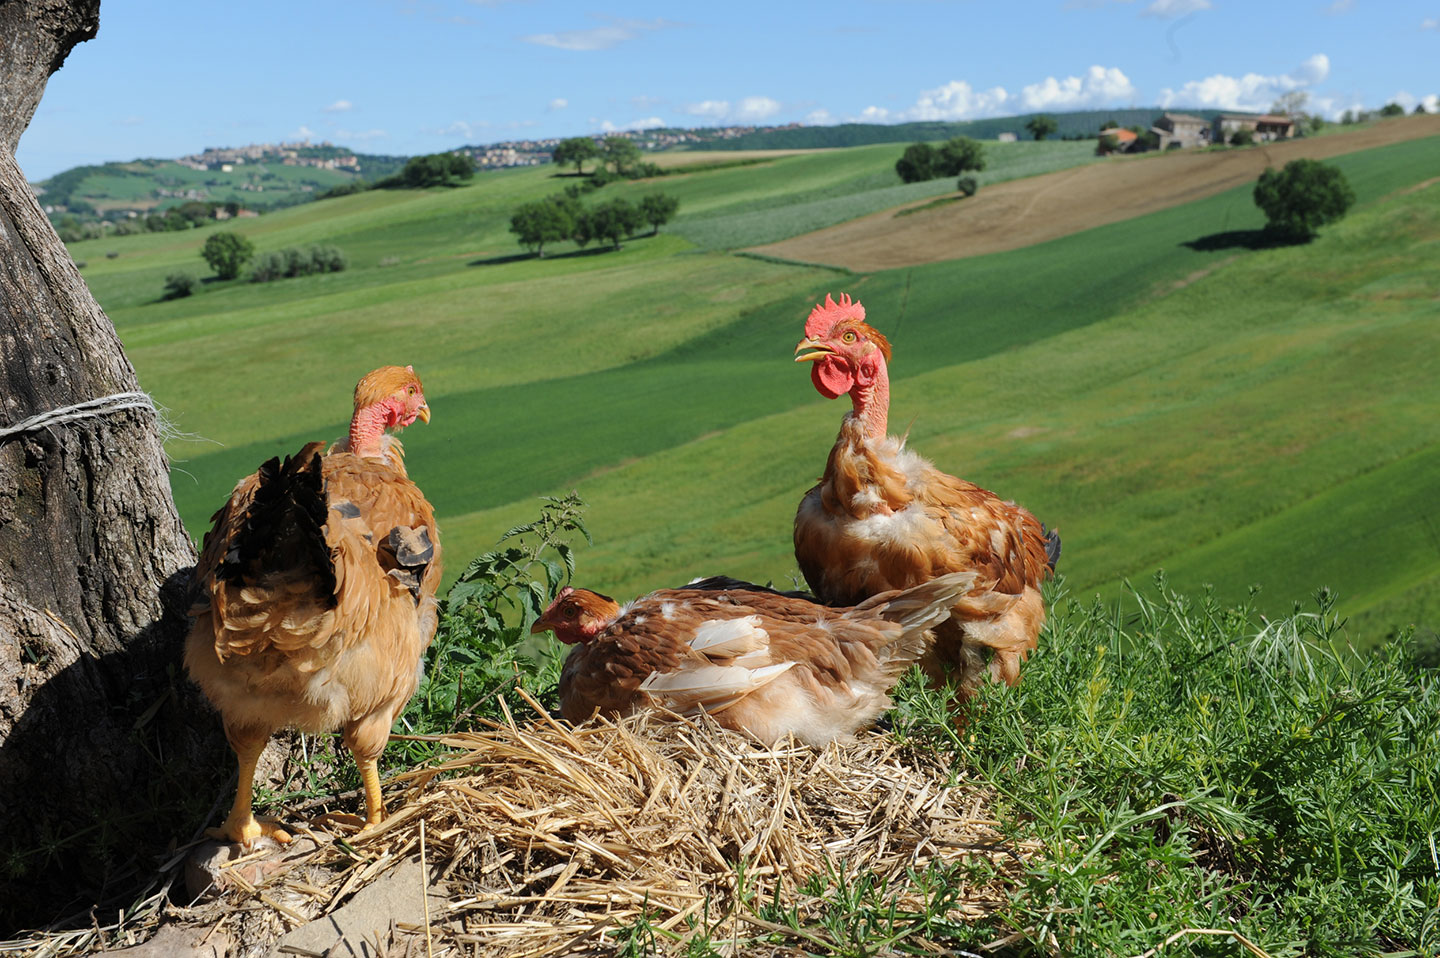 Three chickens sitting on a hilltop